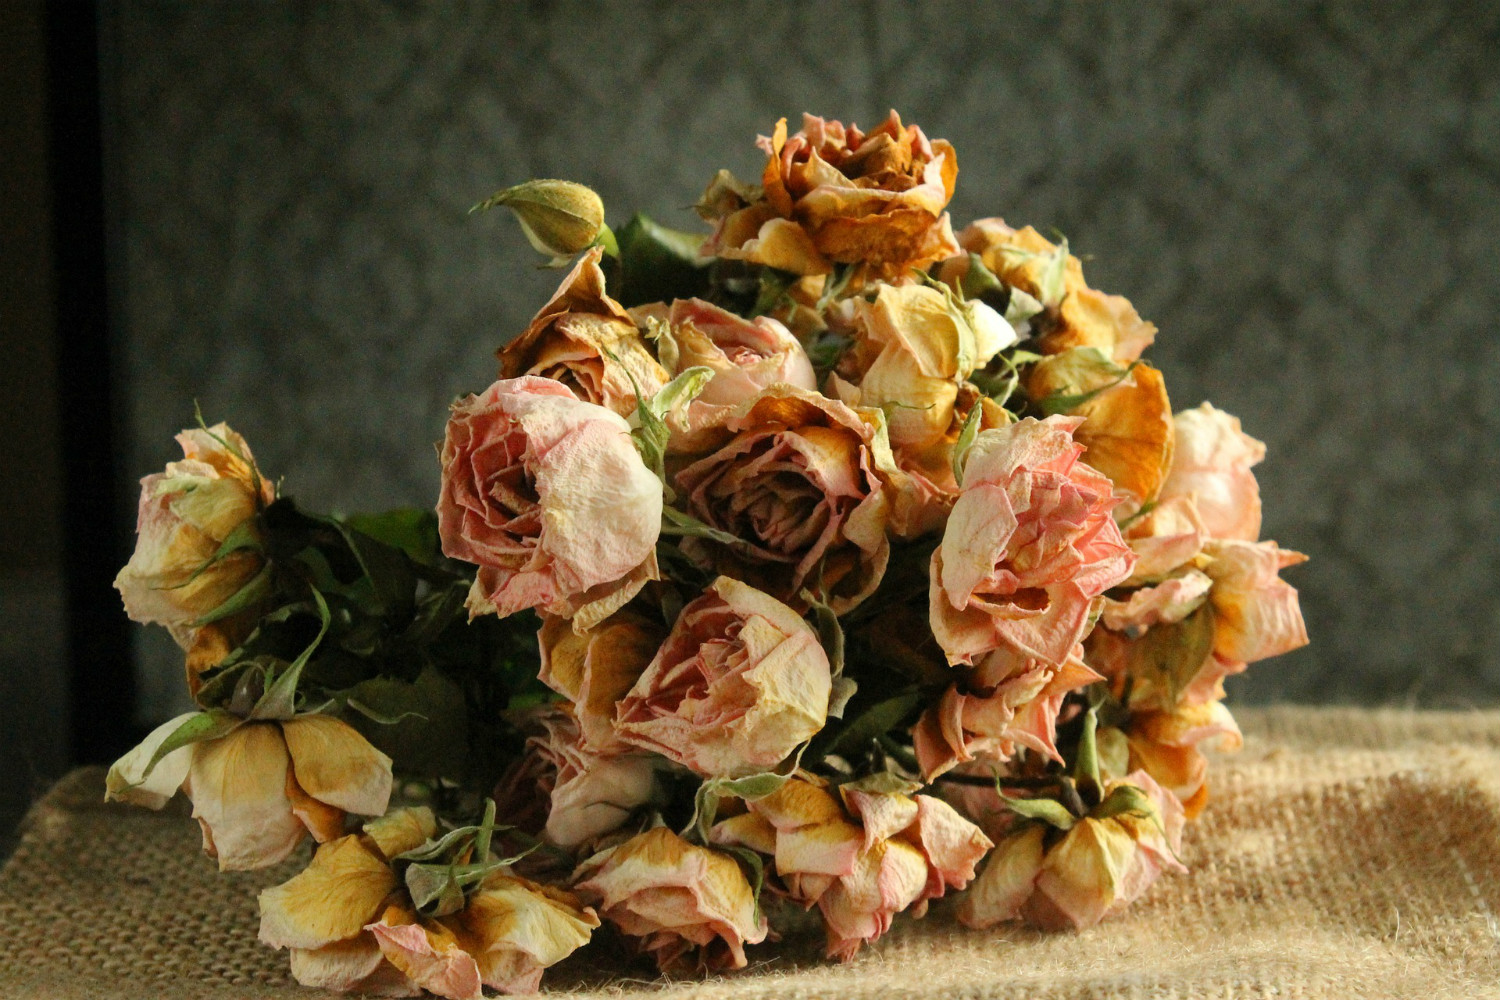 Fading roses on a table, courtesy  of vargazs,  pixabay.com